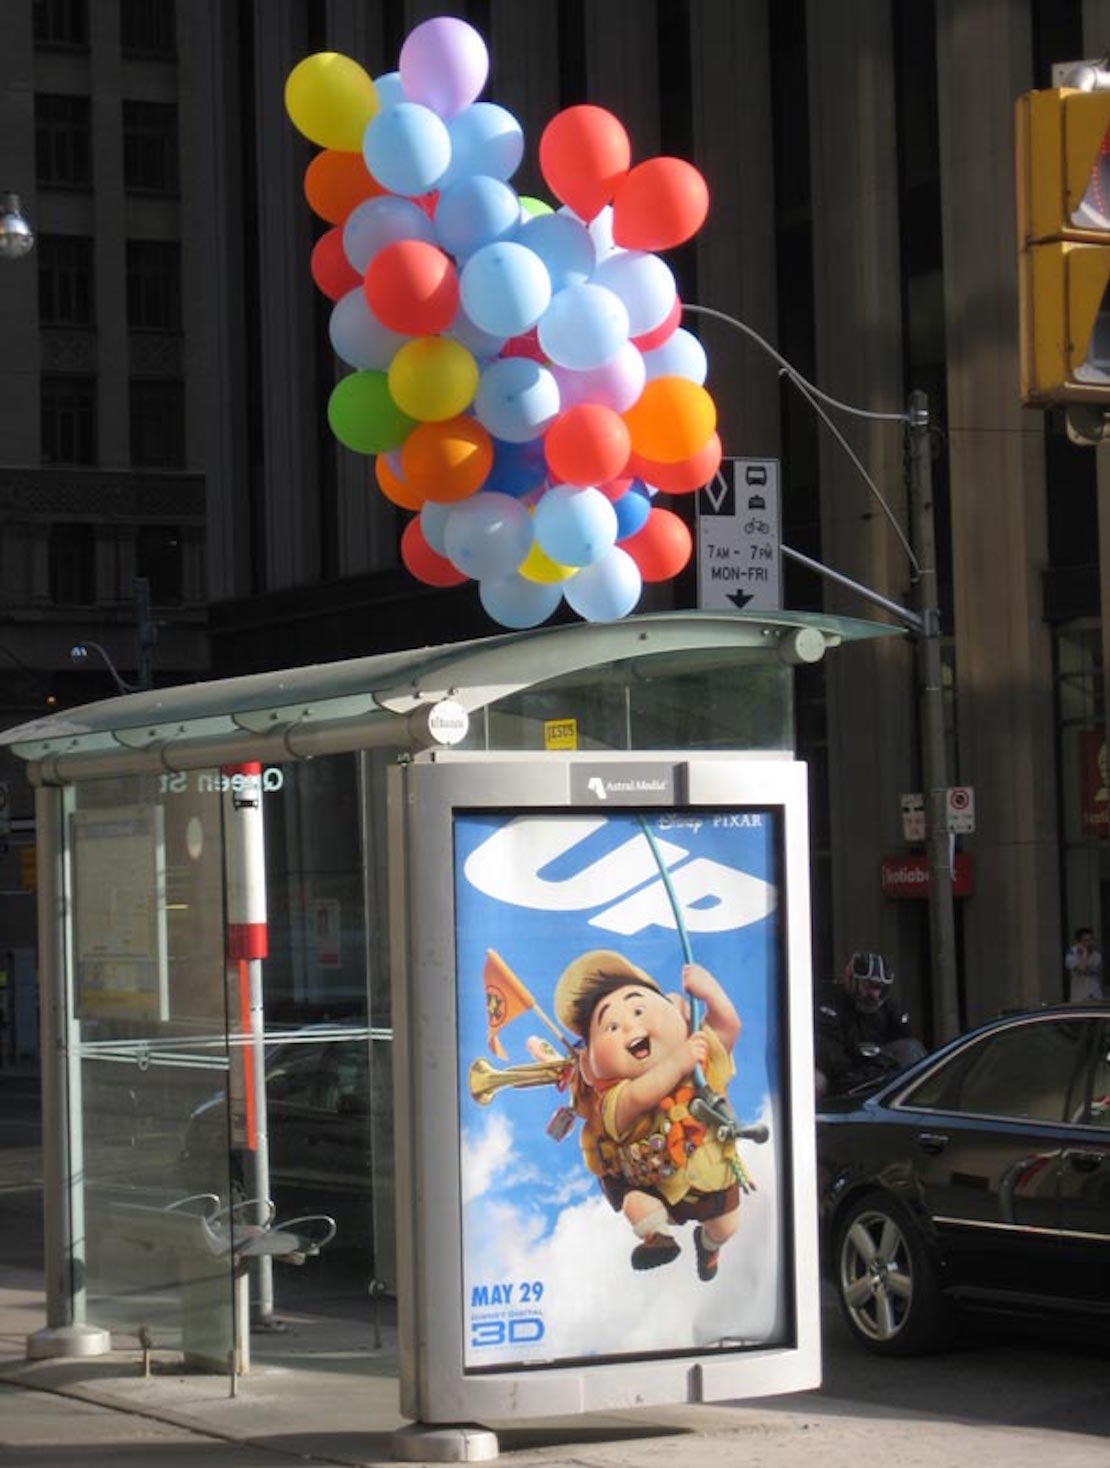 48 Fresh And Creative Bus Stop Advertisements That Will Blow Your Mind 24